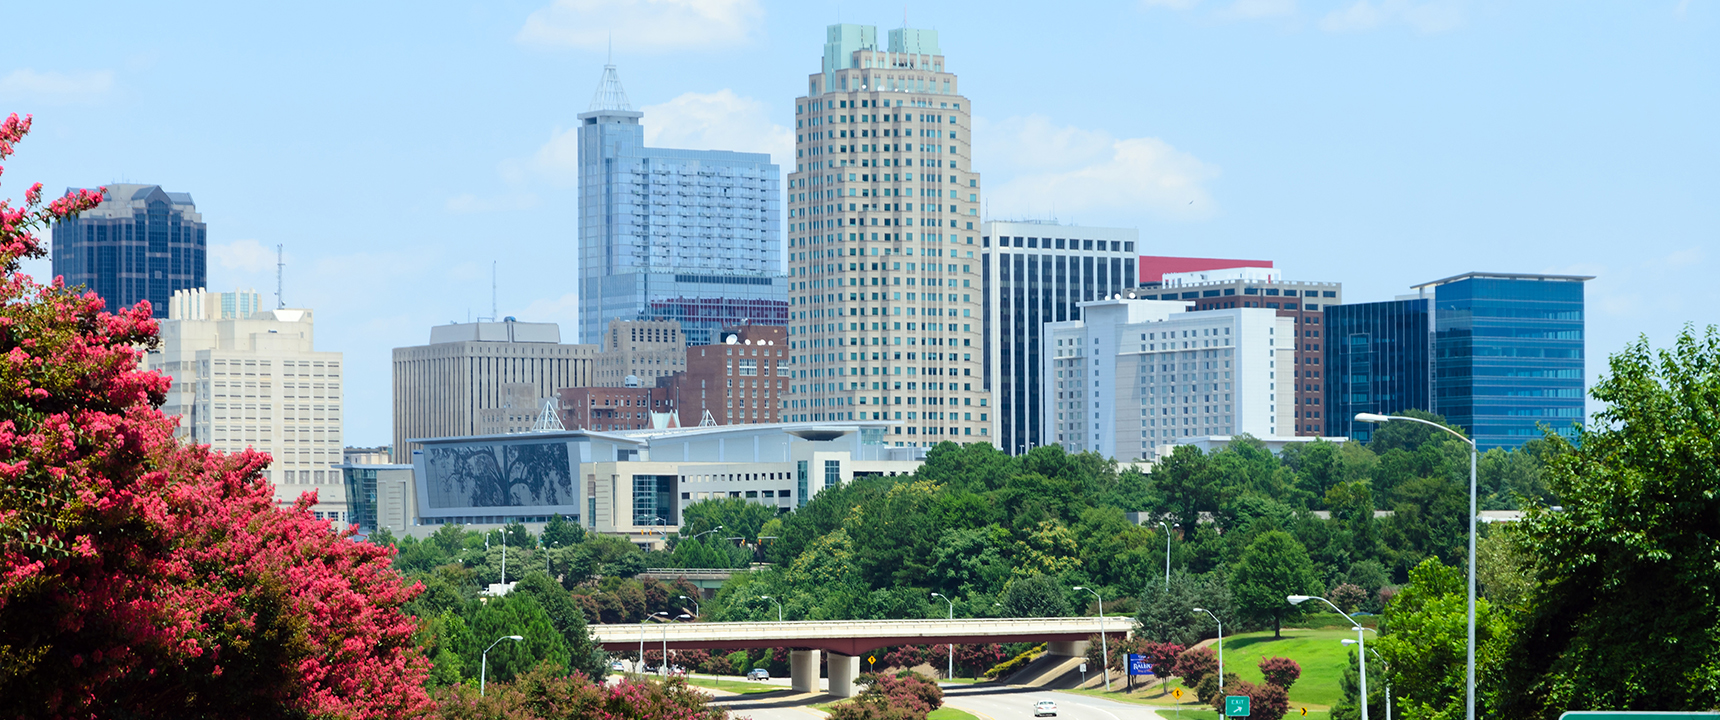 Photo of Raleigh, North Carolina where the Atlantic Coast Business Center site is located.